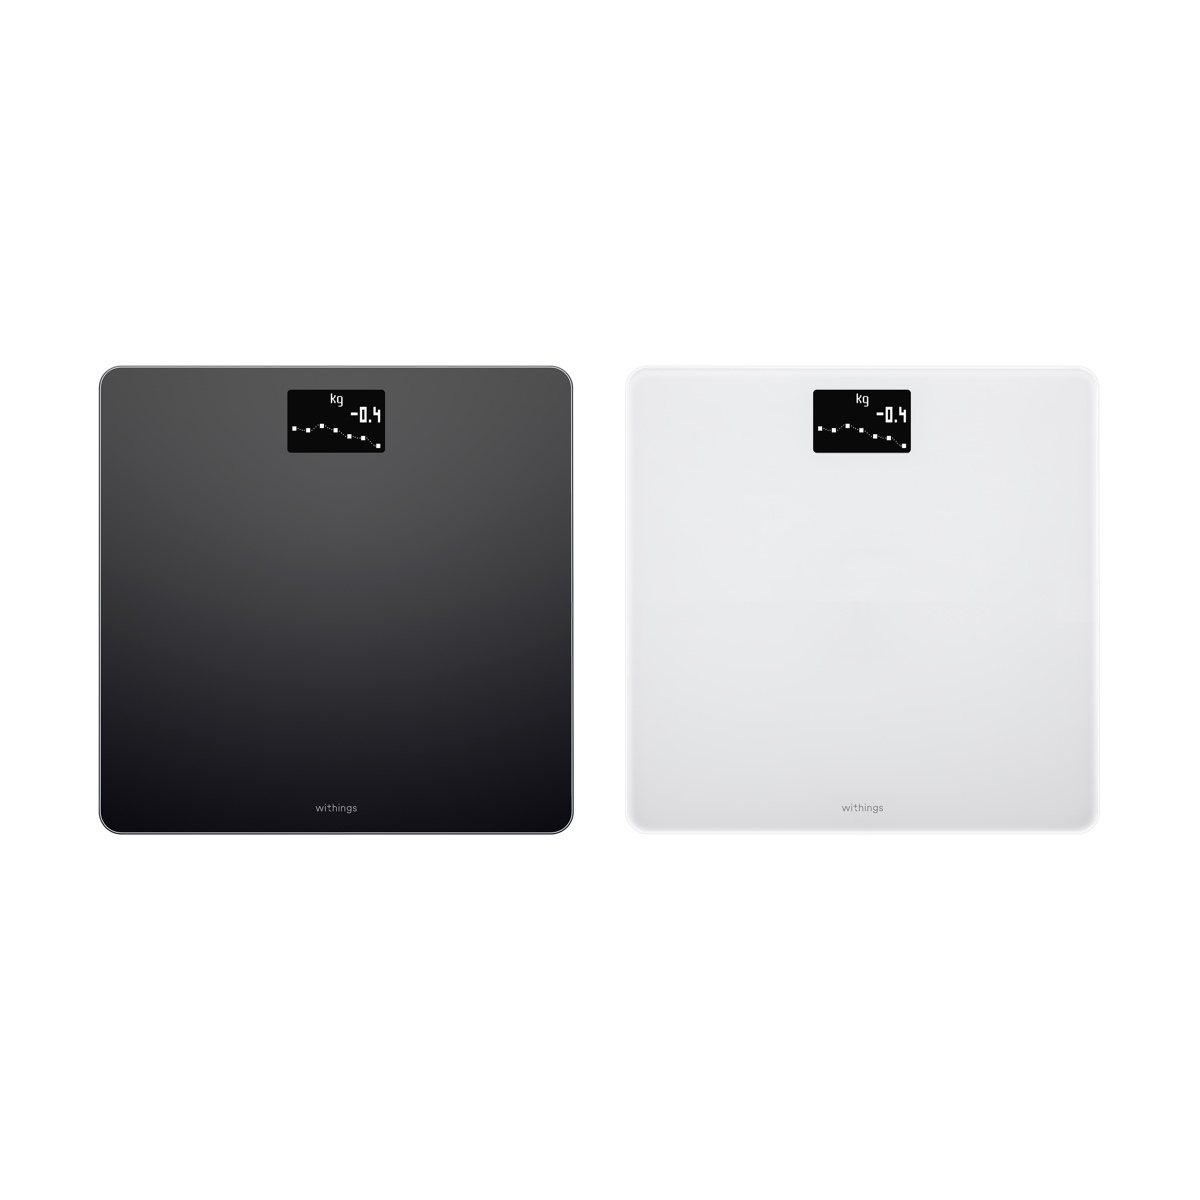 Weight Bmi Wi Fi Scale Withings Body Charge Detector